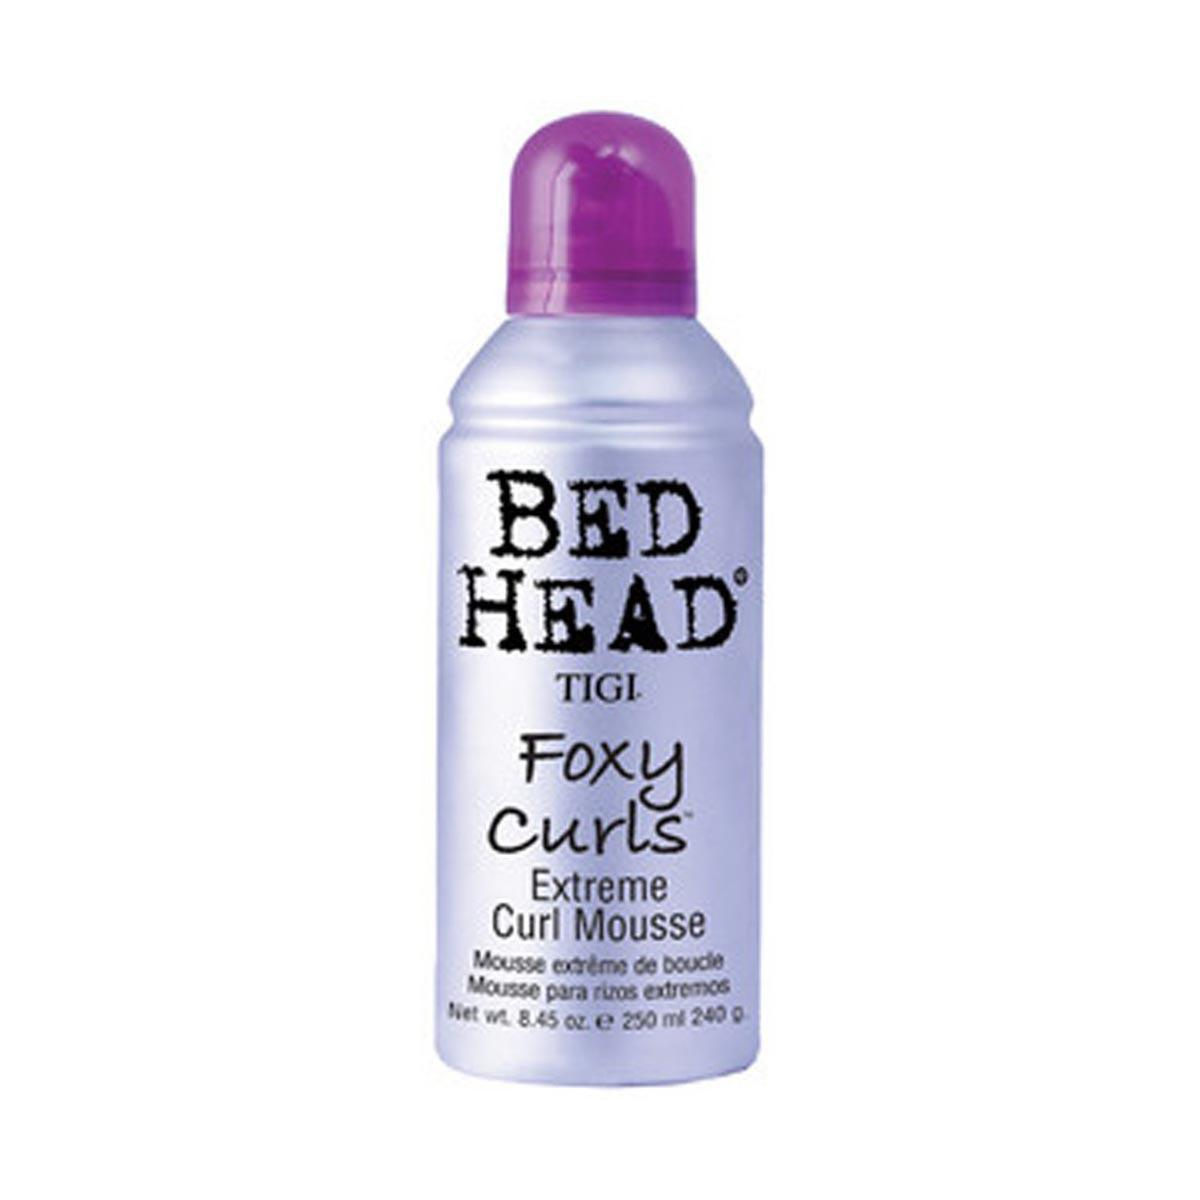 Tigi fragrances Bed Head Foxy Curls Mousse 250ml